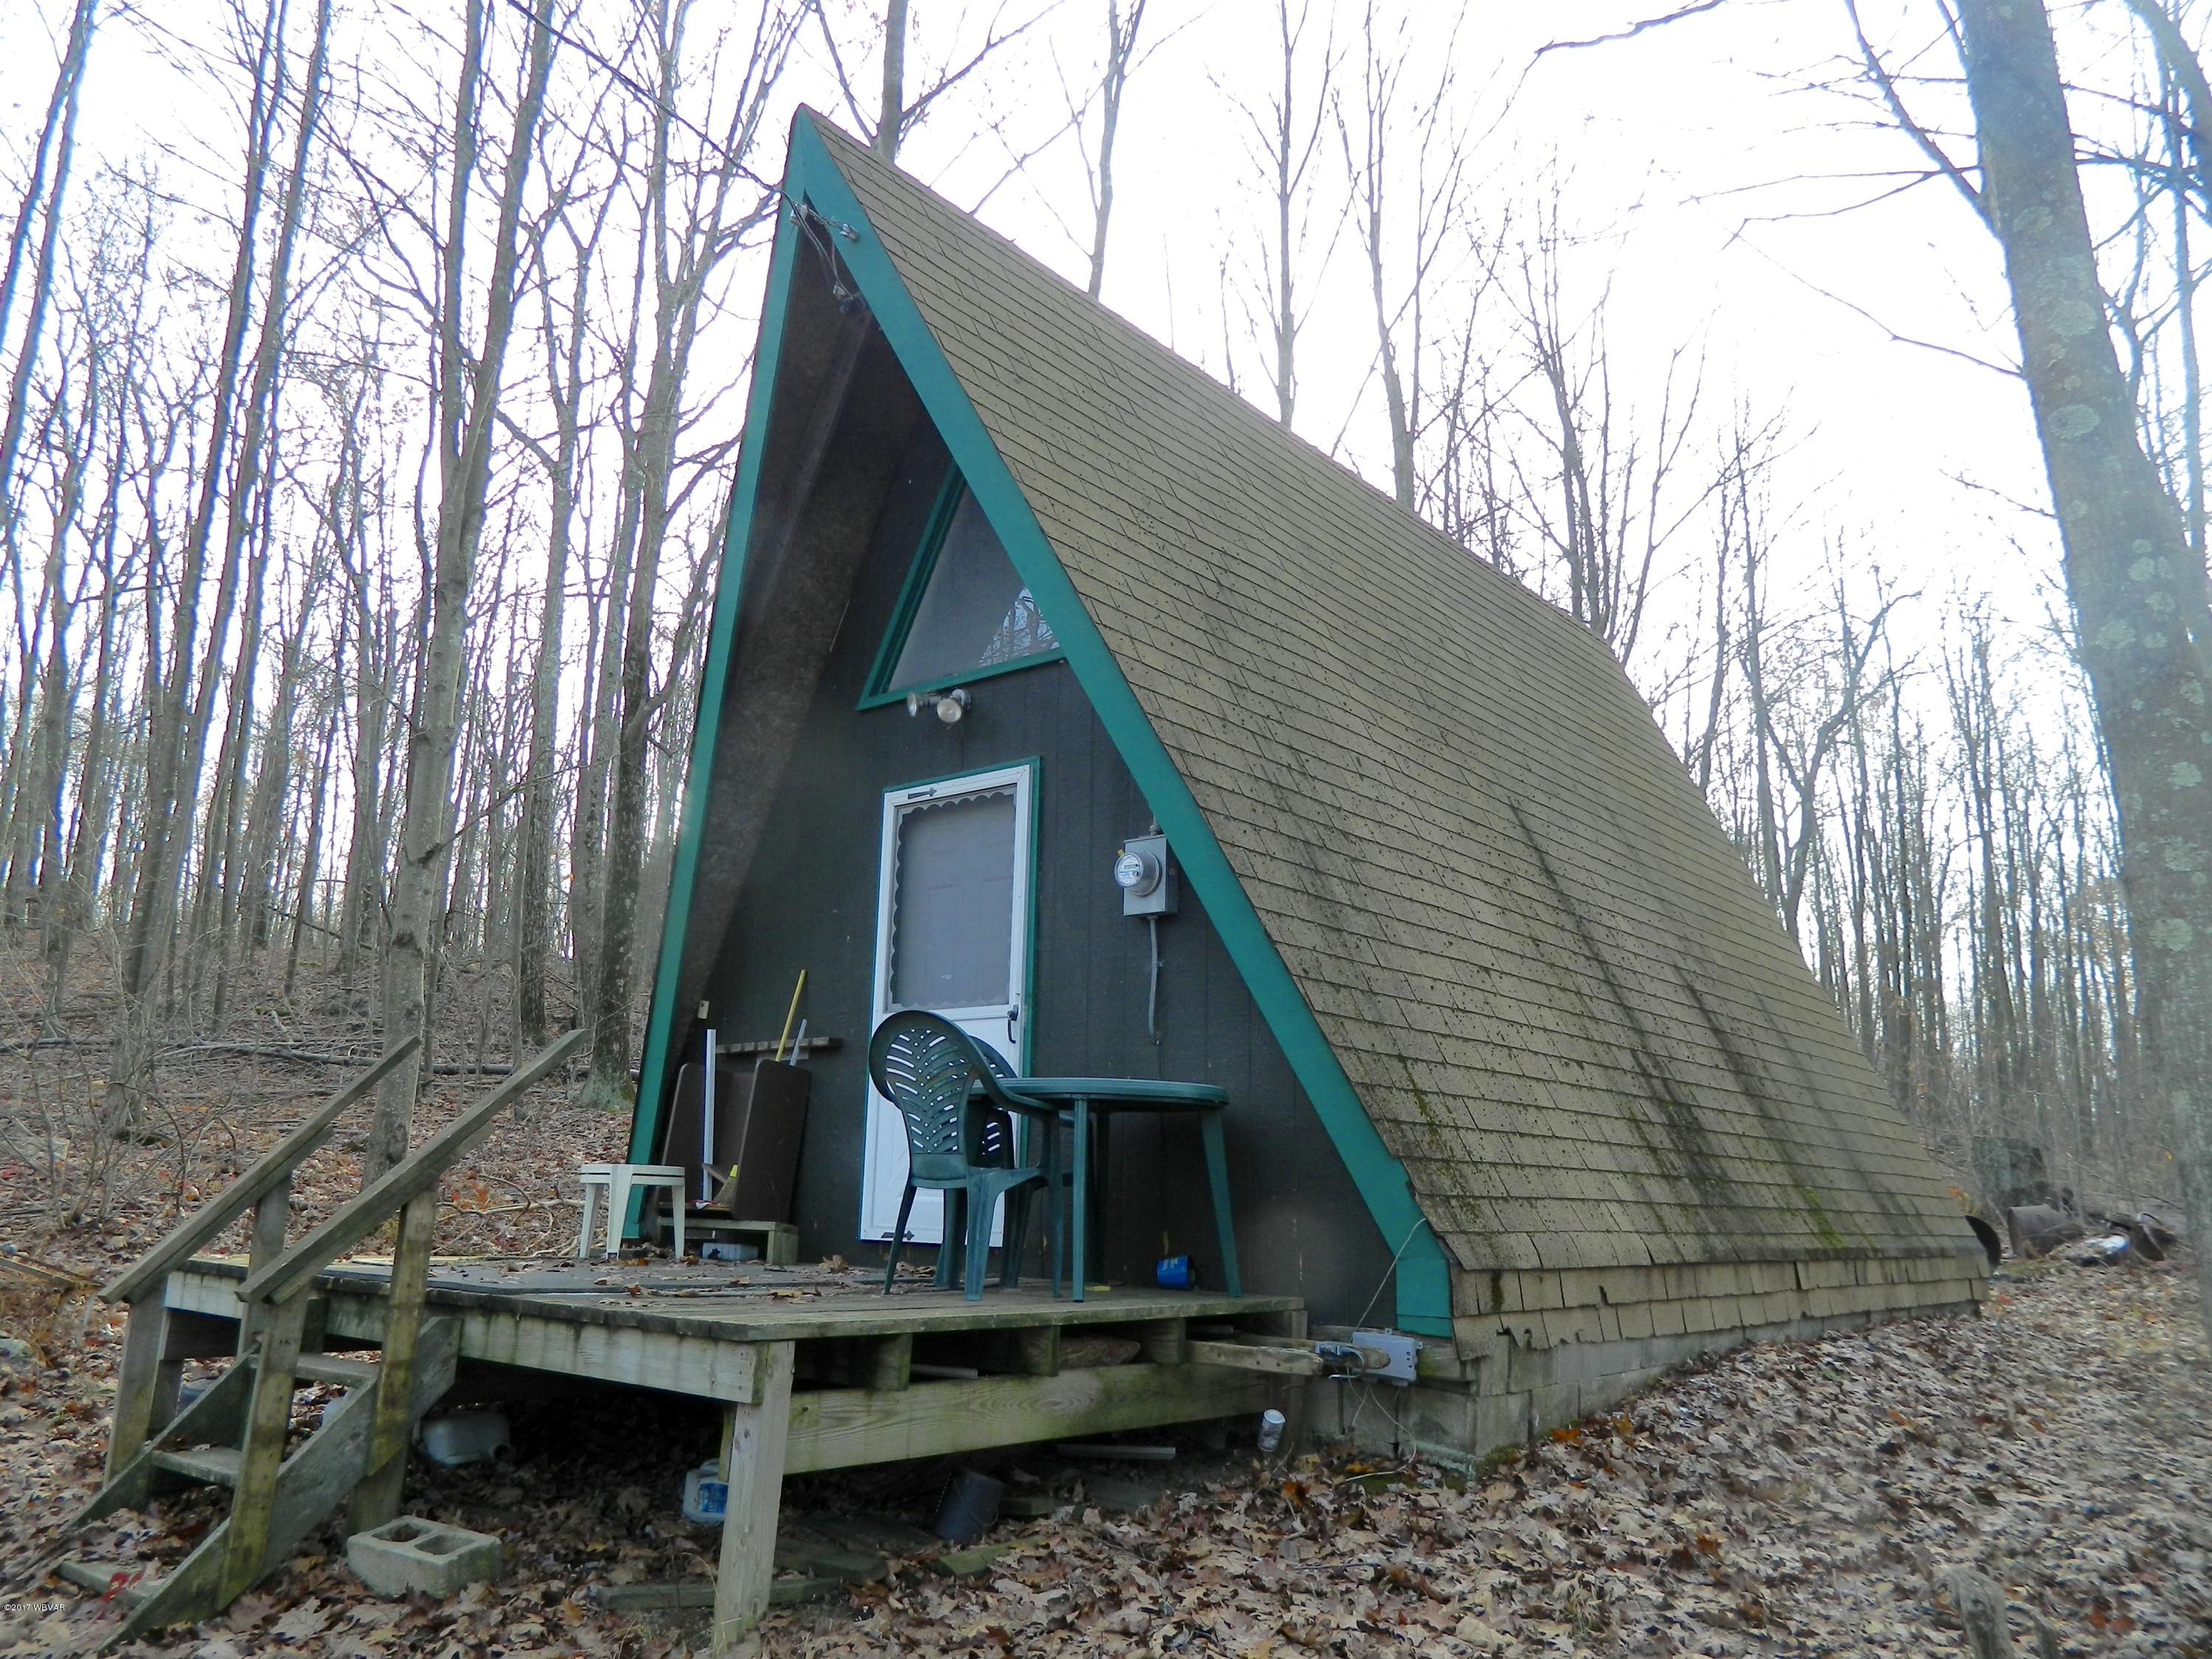 1935 DEEP HOLLOW ROAD,New Albany,PA 18833,1 Bedroom Bedrooms,Cabin/vacation home,DEEP HOLLOW,WB-82562